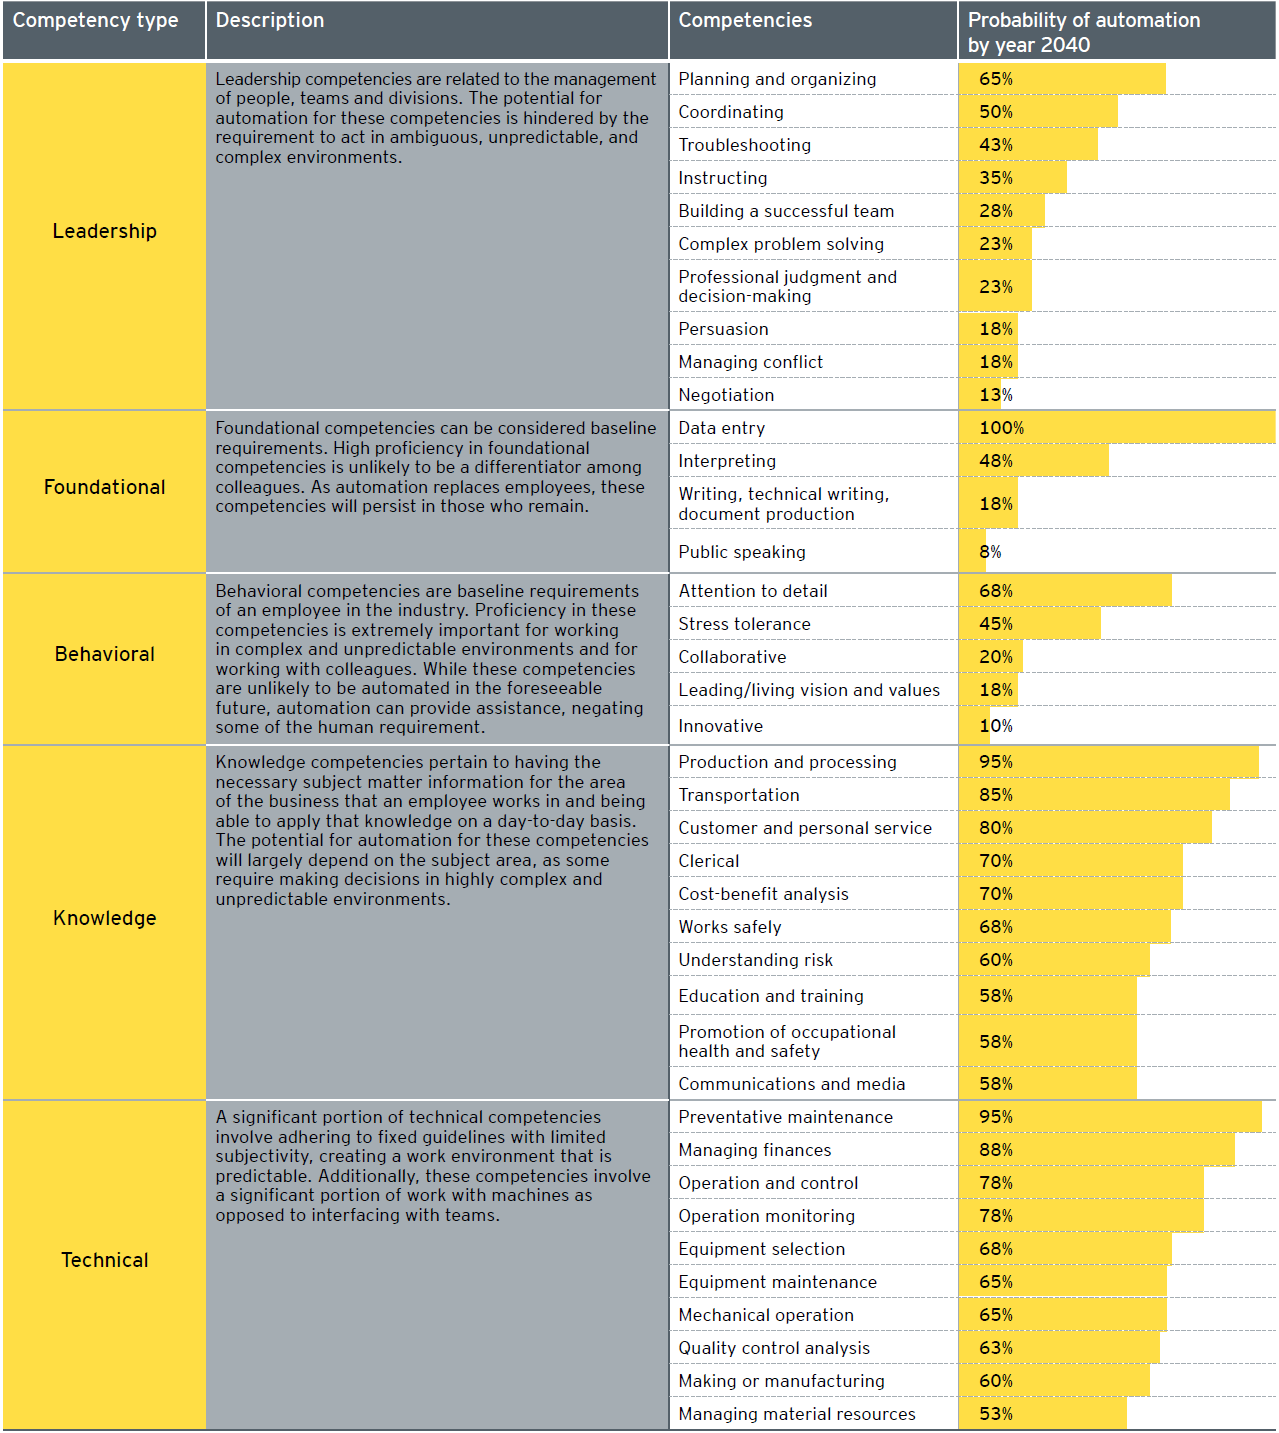 Probability of automating competencies